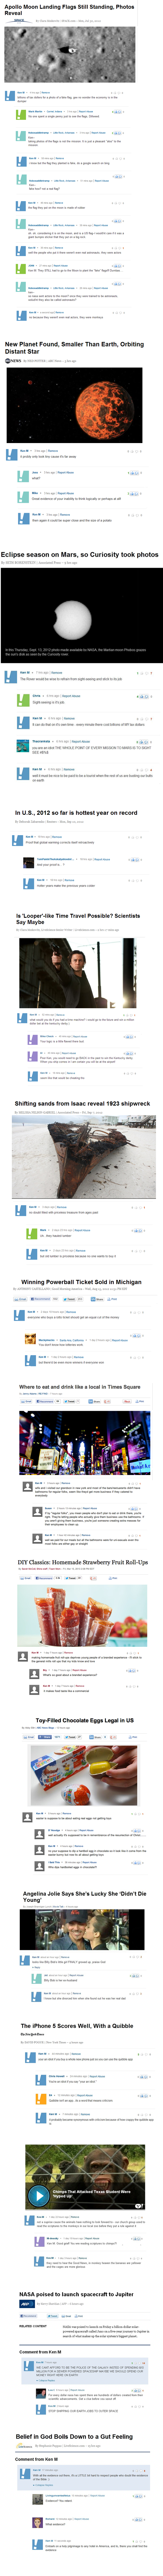 The Best of Ken M - Troll Legend pt 2. second part of the Ken M trolling merry xmas!.. 'do a google search on bing'